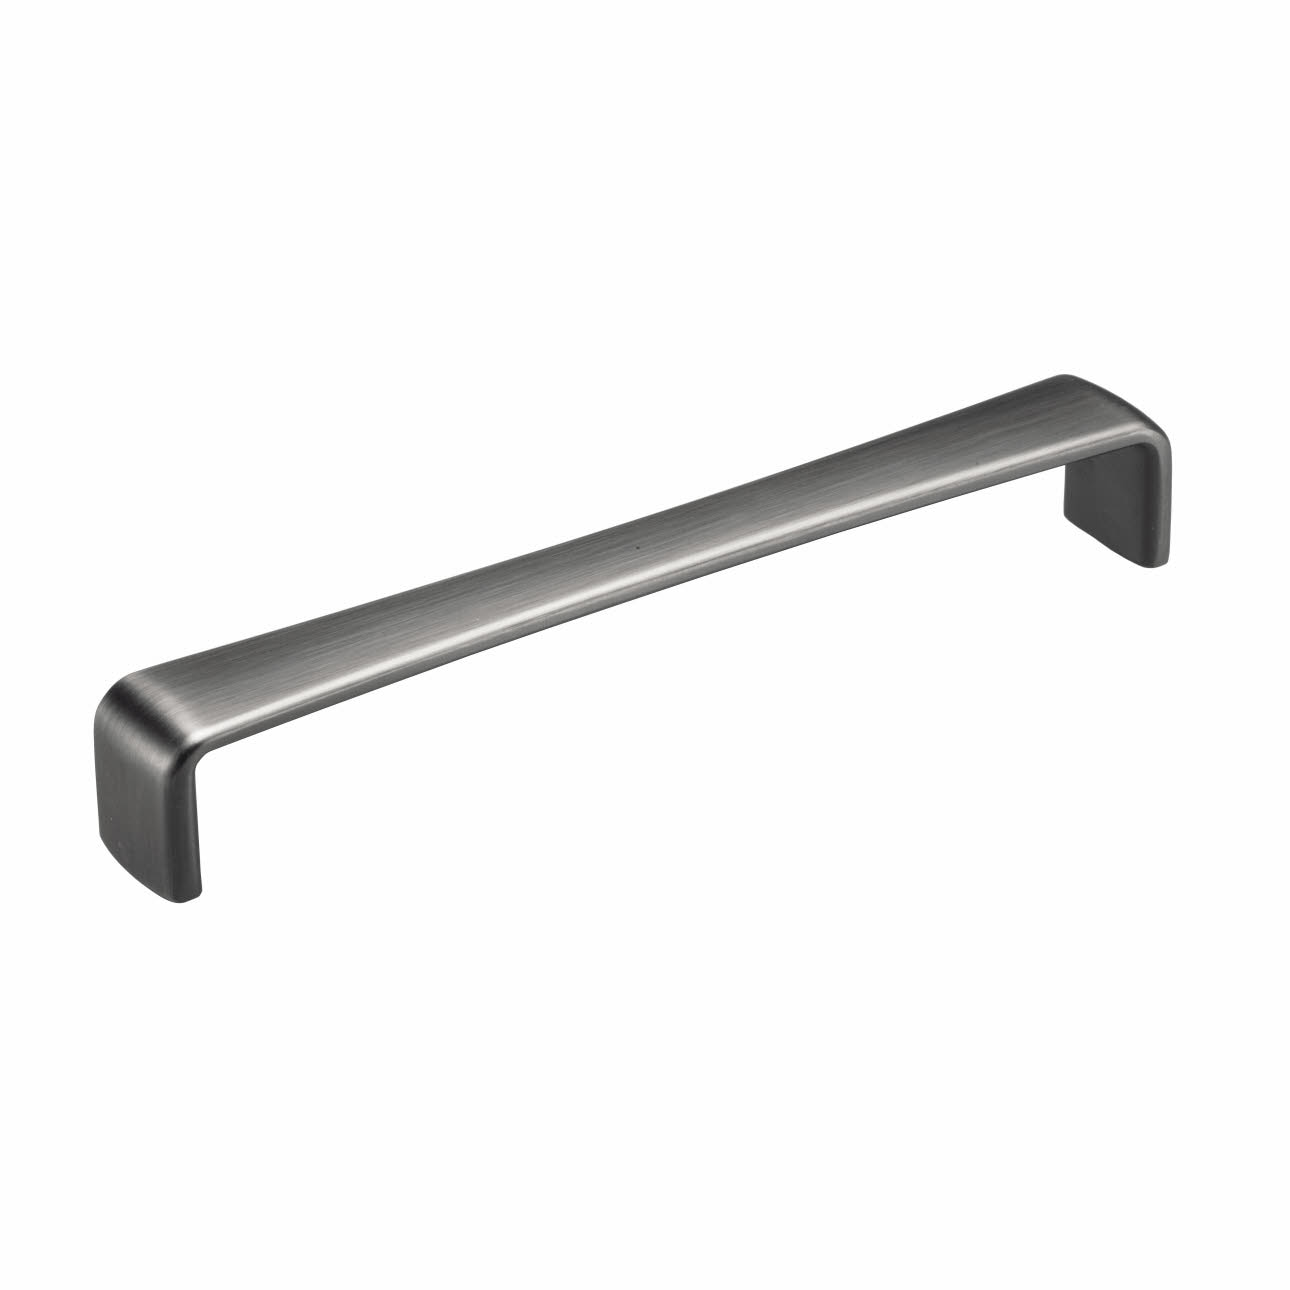 Metal handle Stainless steel coloured 2